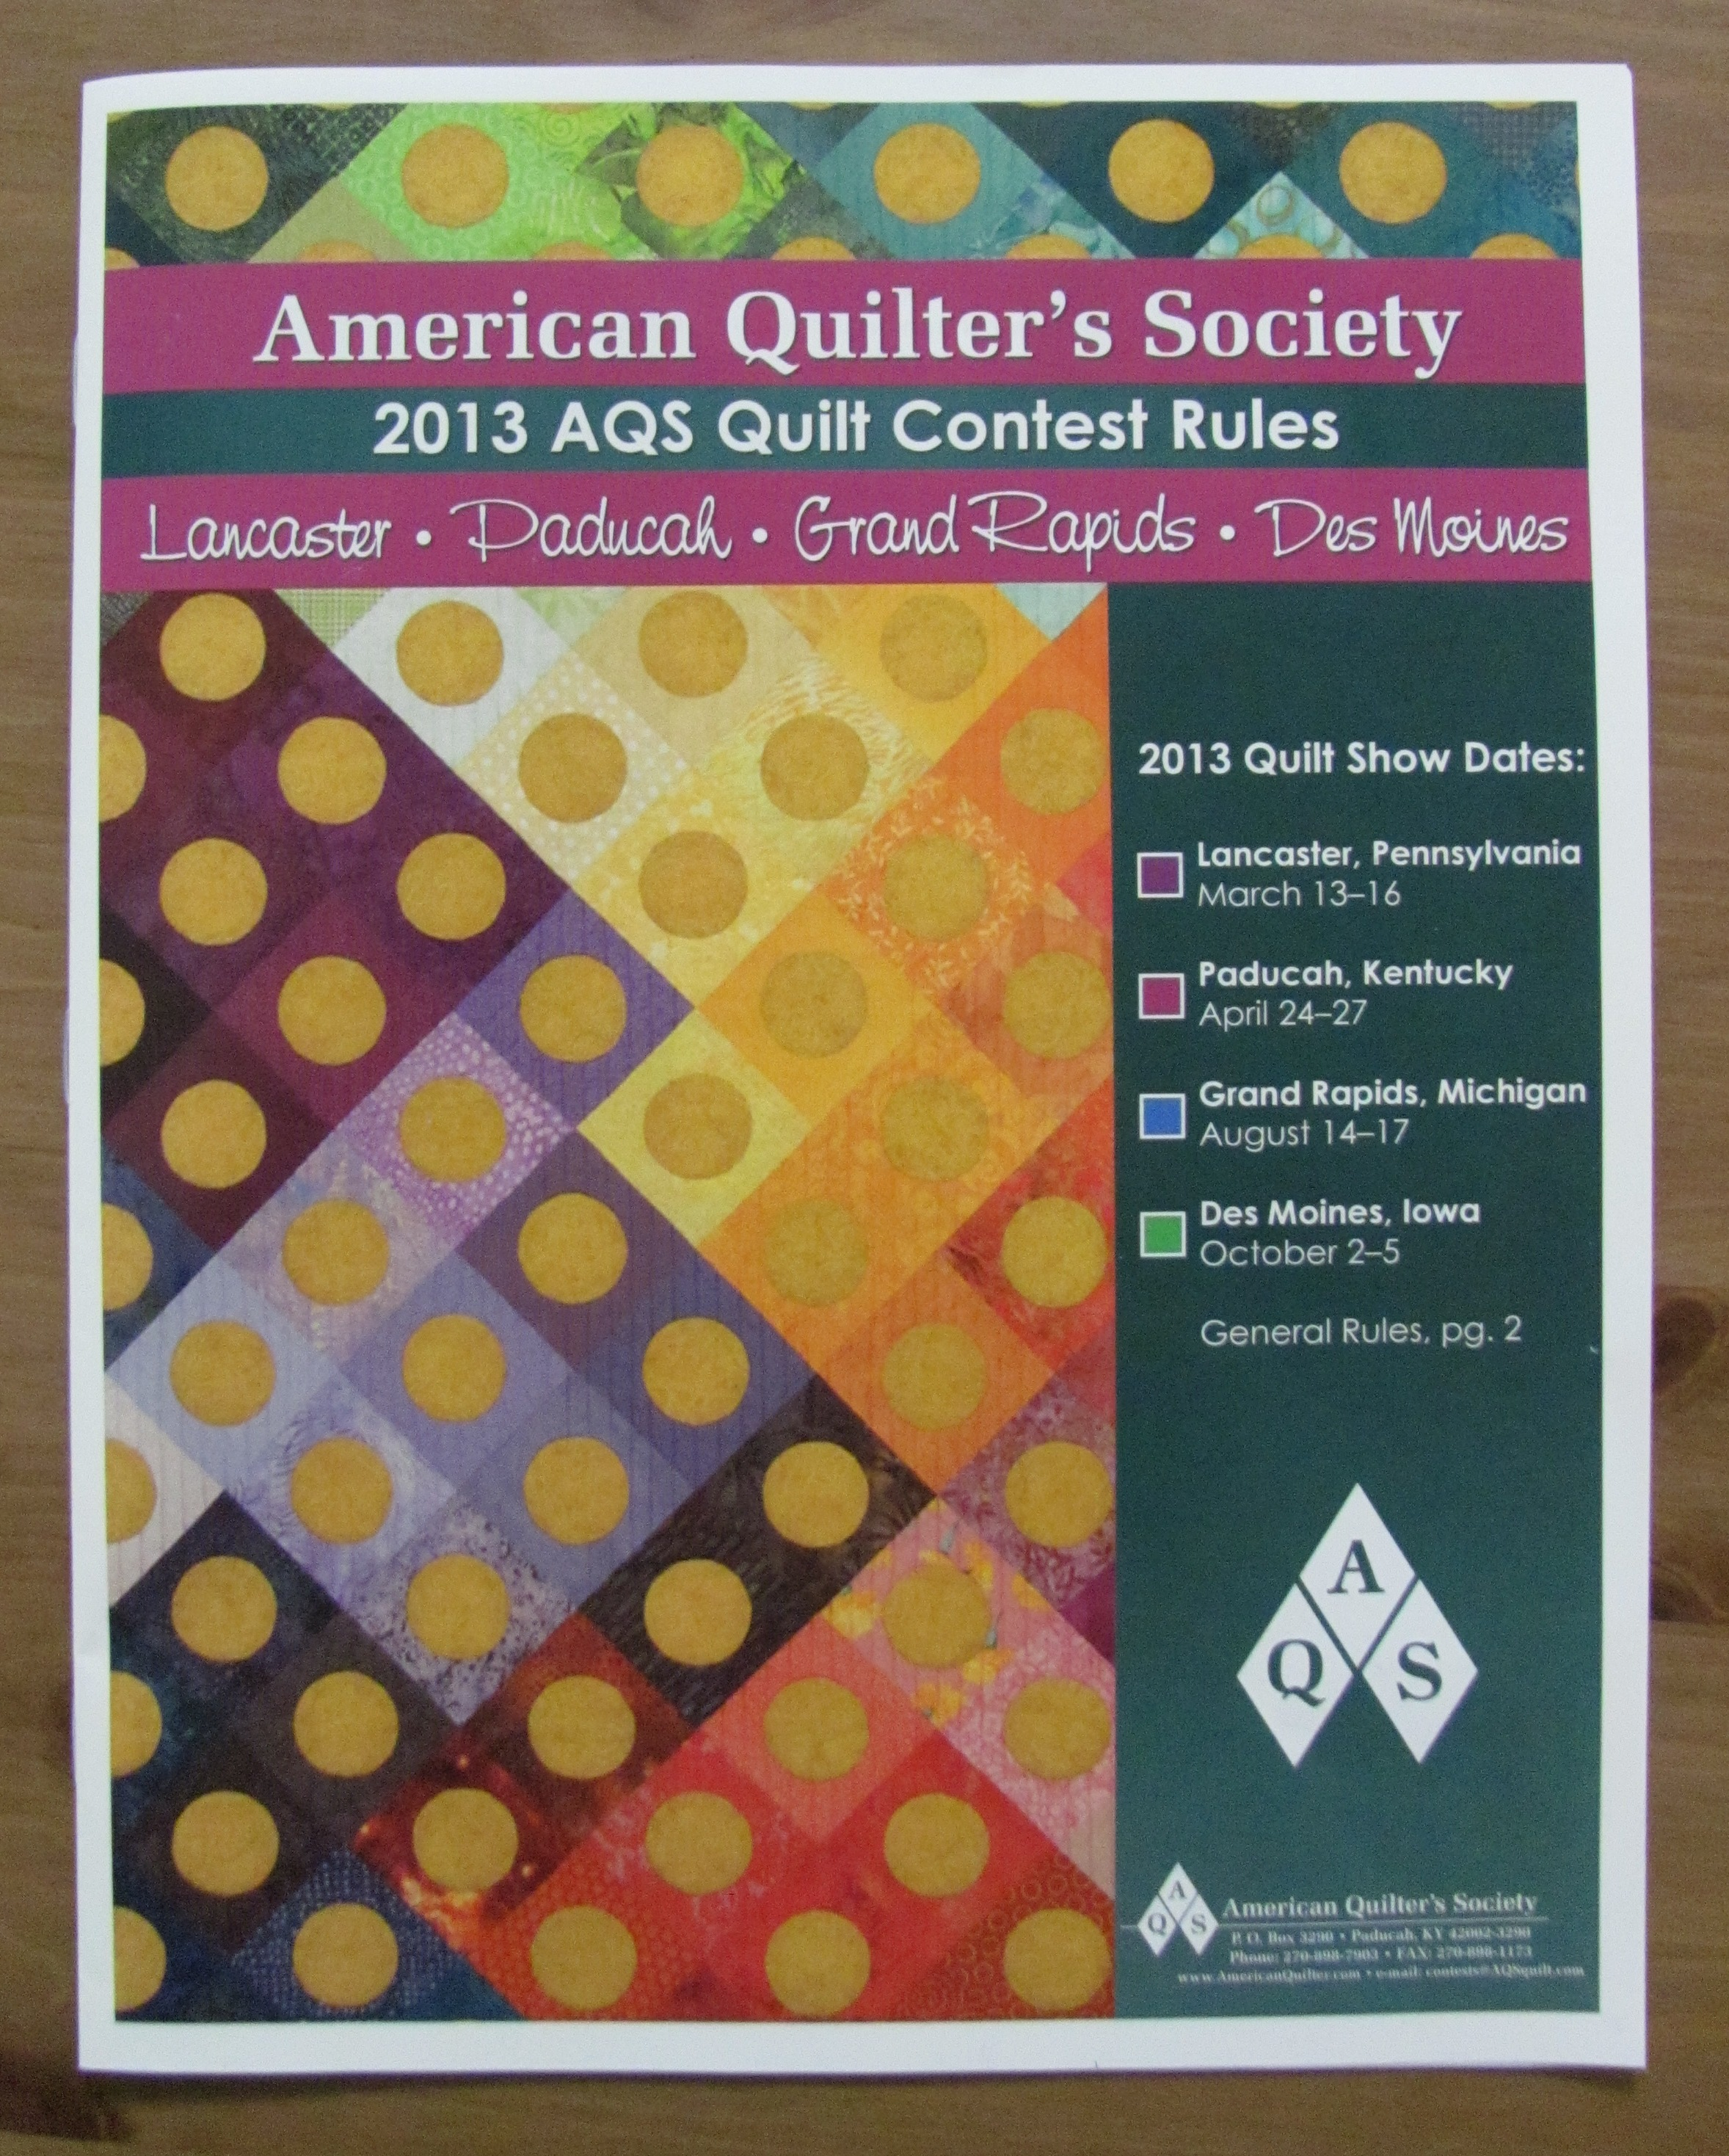 aqs rules cover